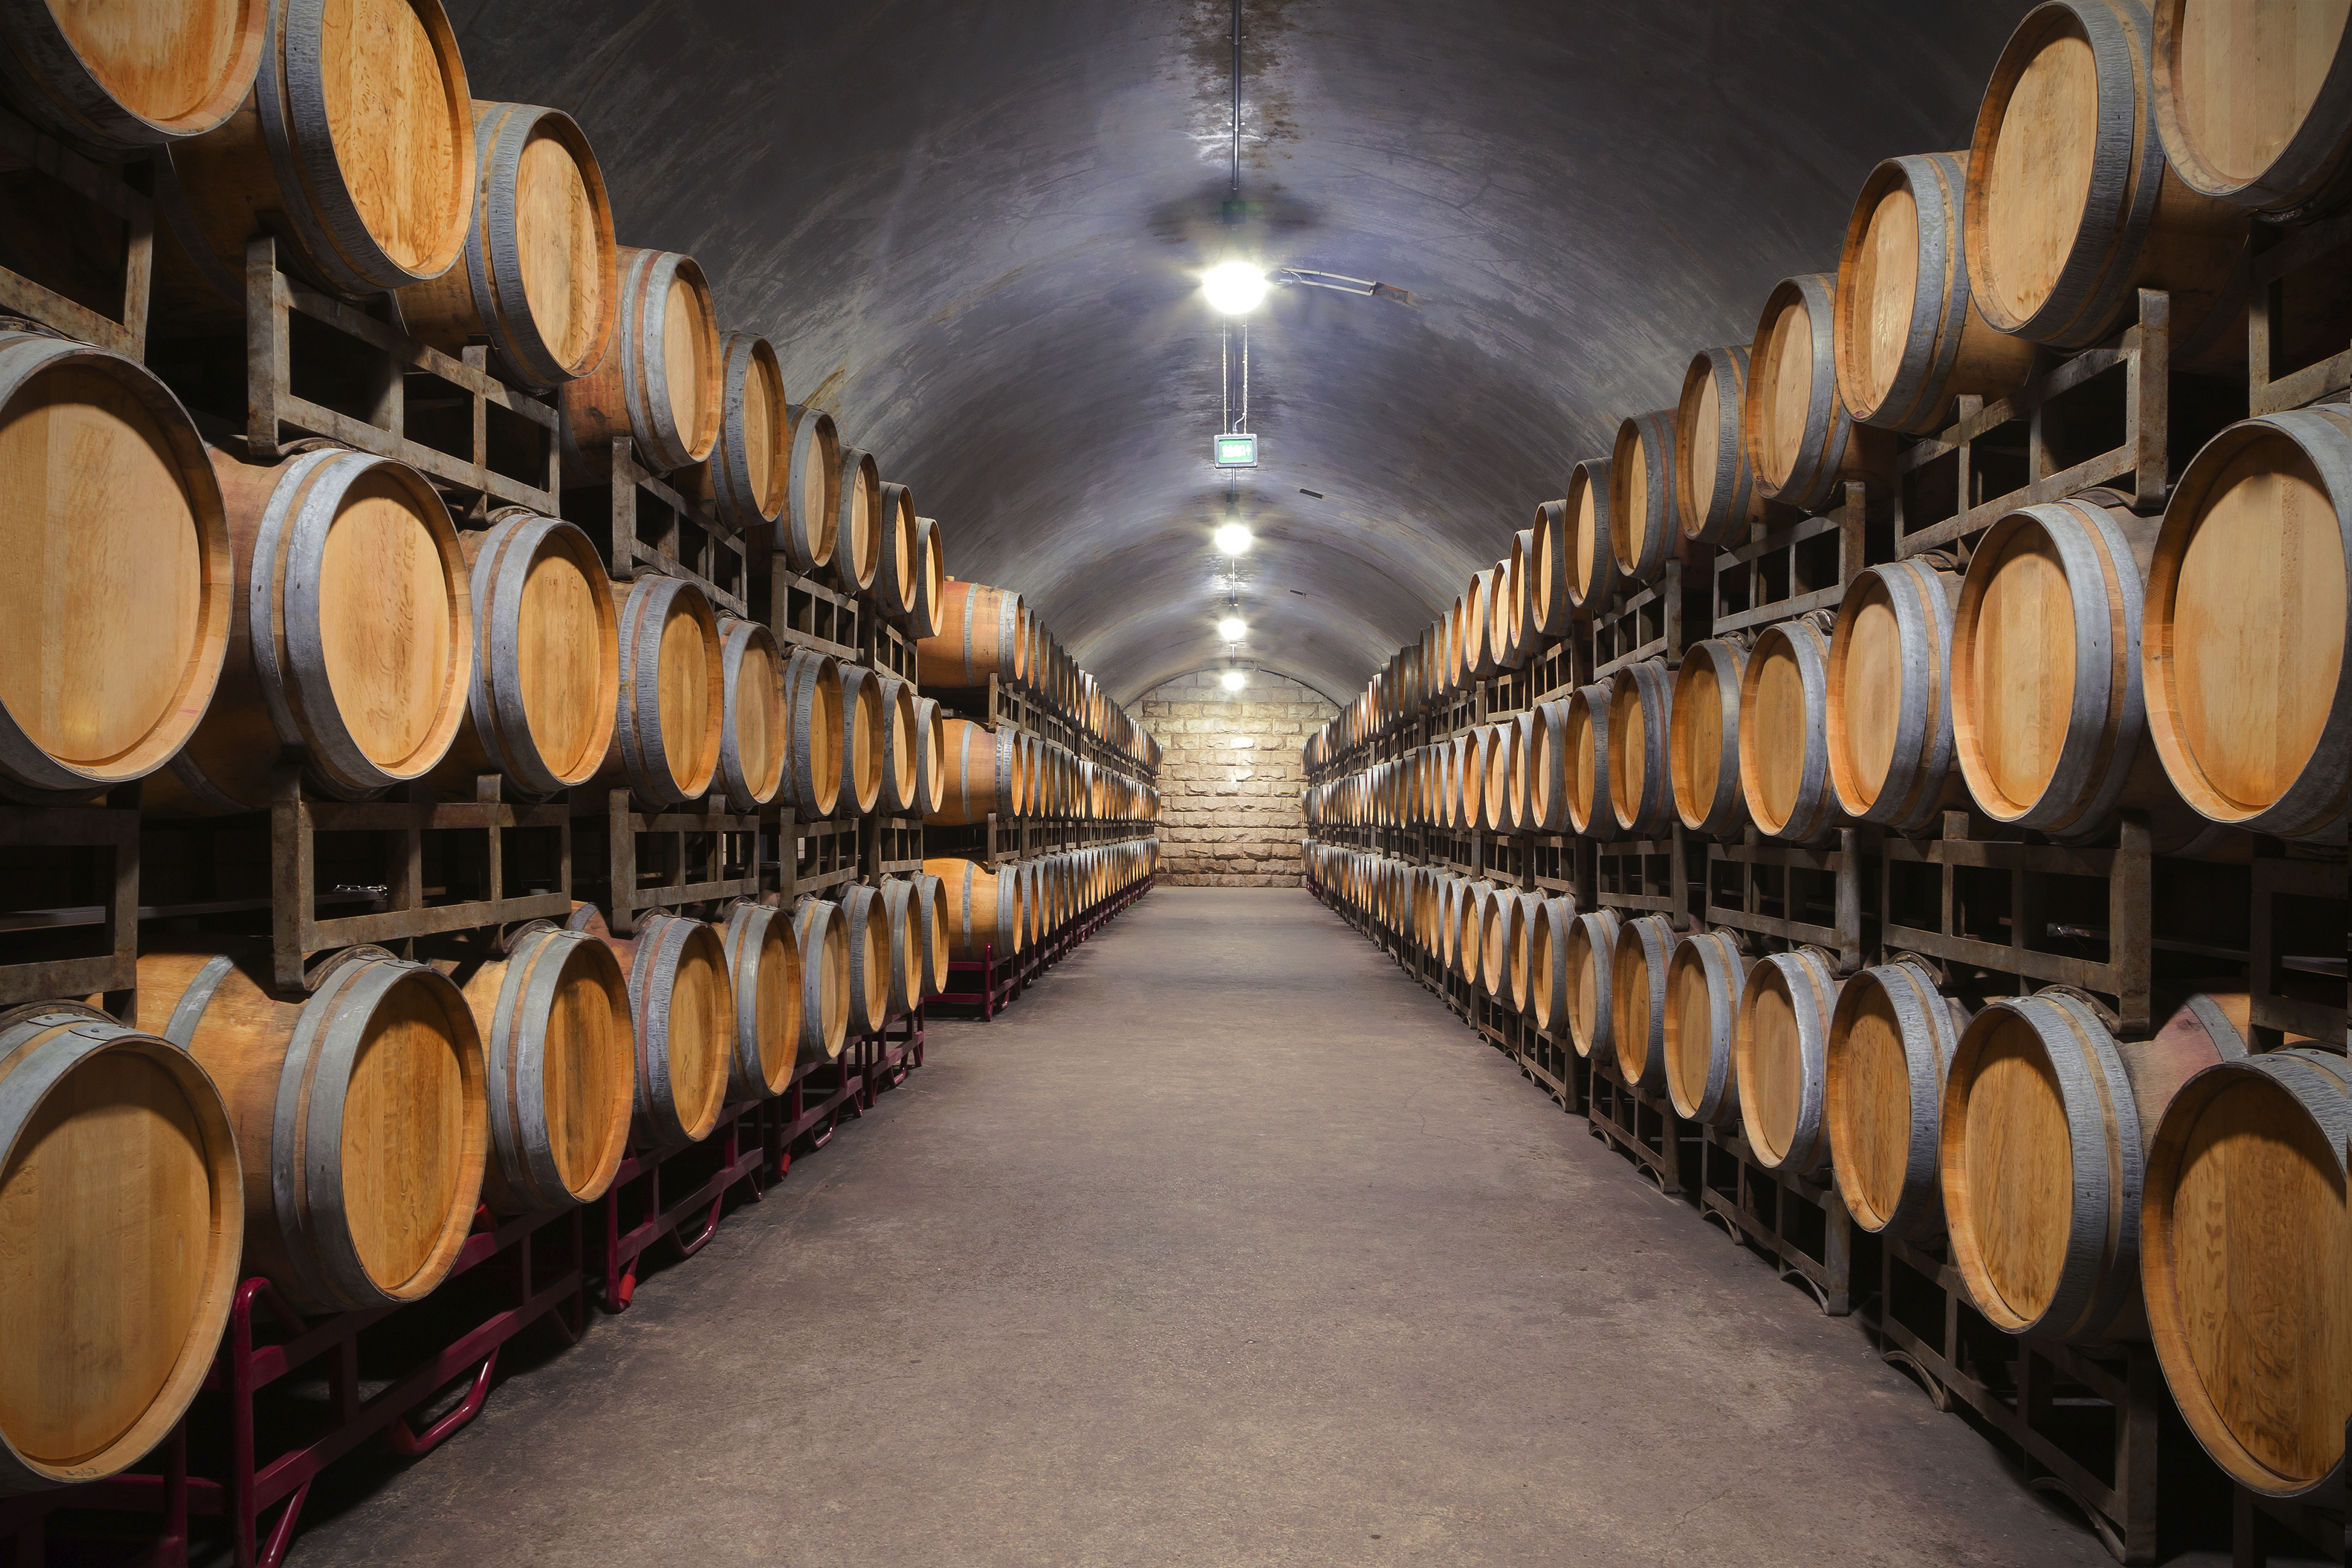 Underground wine cellar barrels & Underground wine cellar barrels | Global Trade Review (GTR)